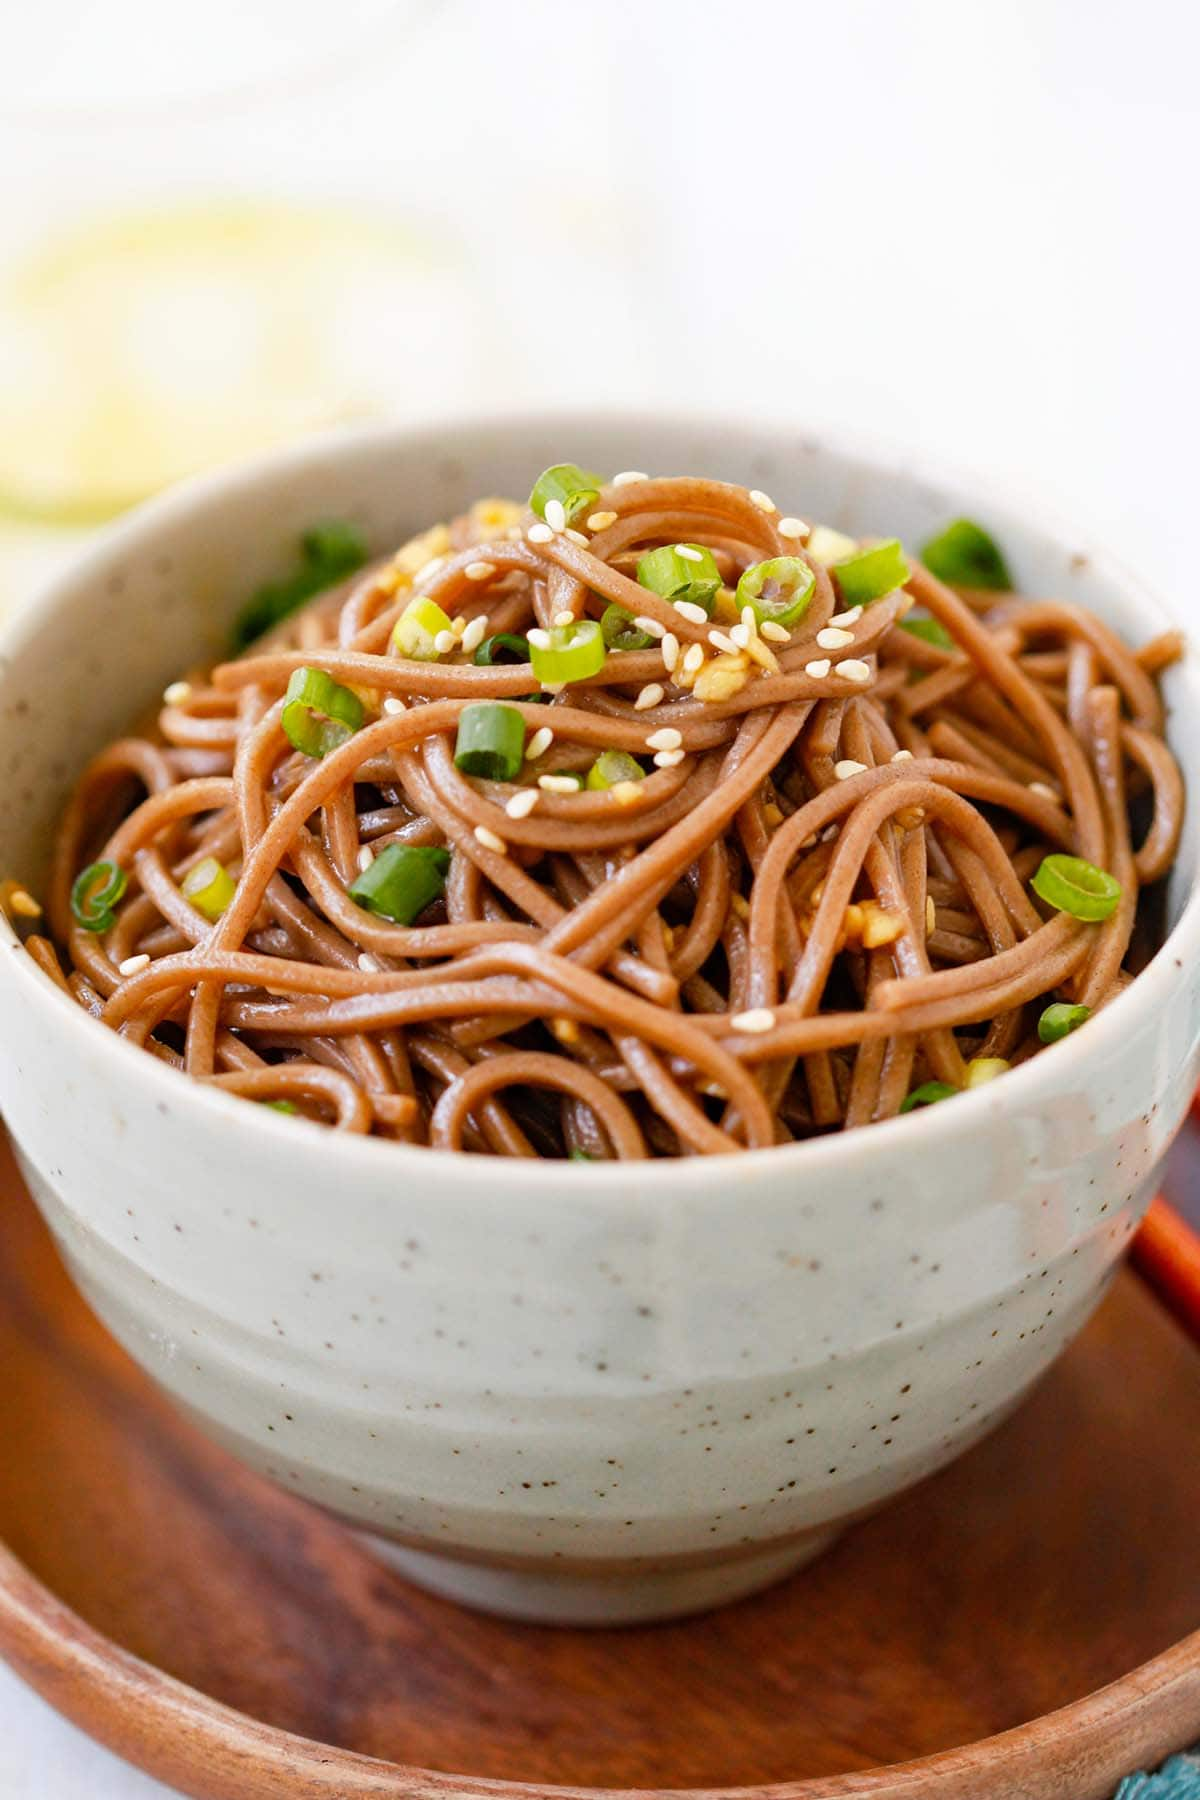 Homemade easy noodles made with ginger, soy sauce, honey and Japanese soba noodles ready to serve.